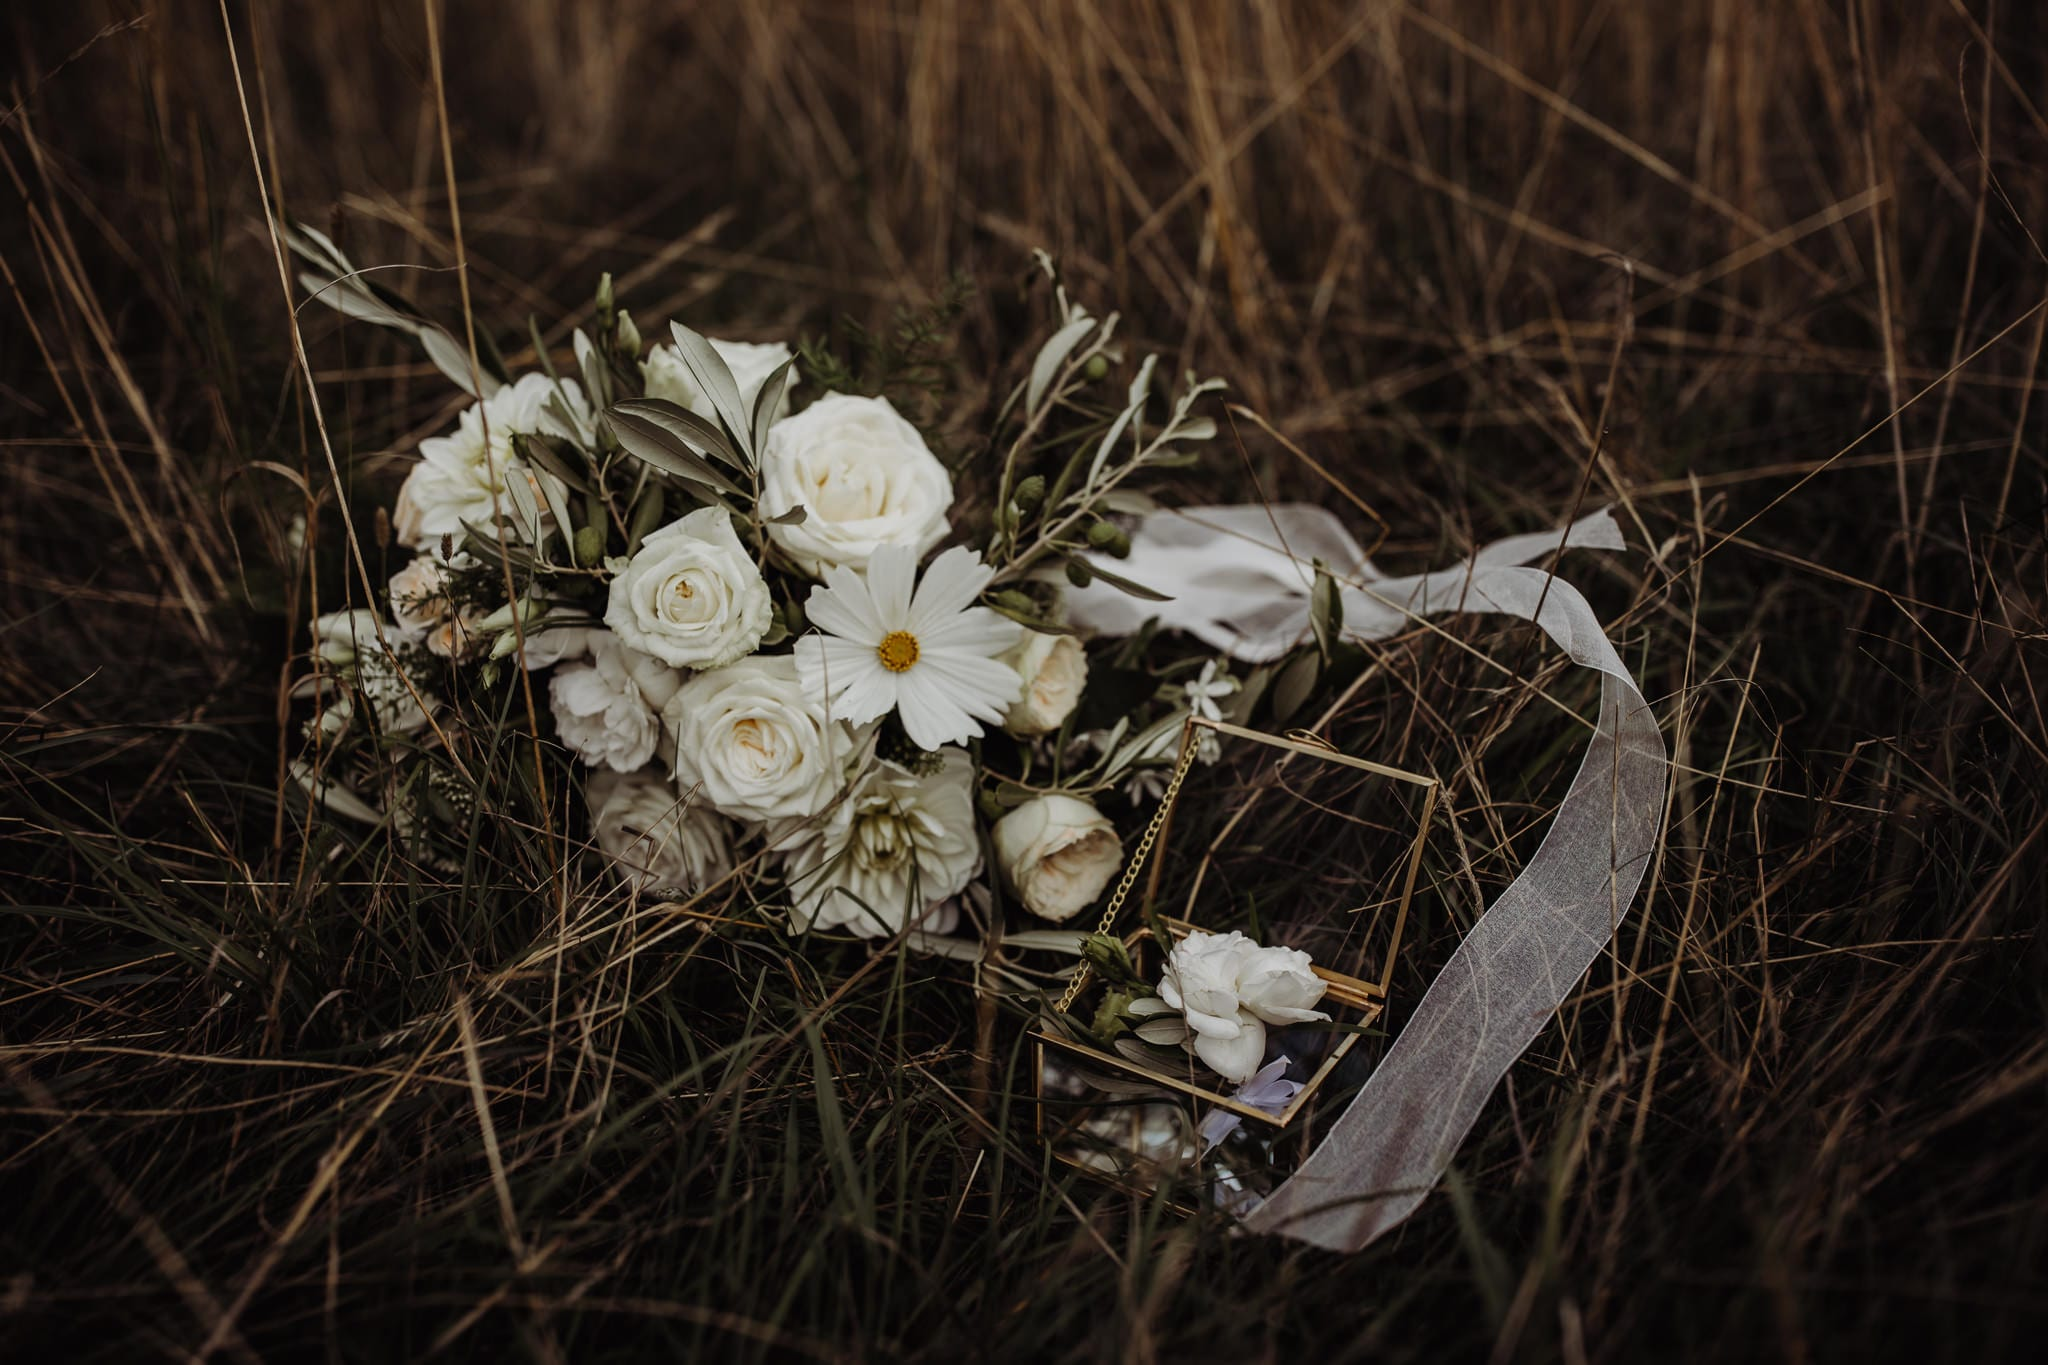 details of wedding flowers at a Cambridge countryside elopement